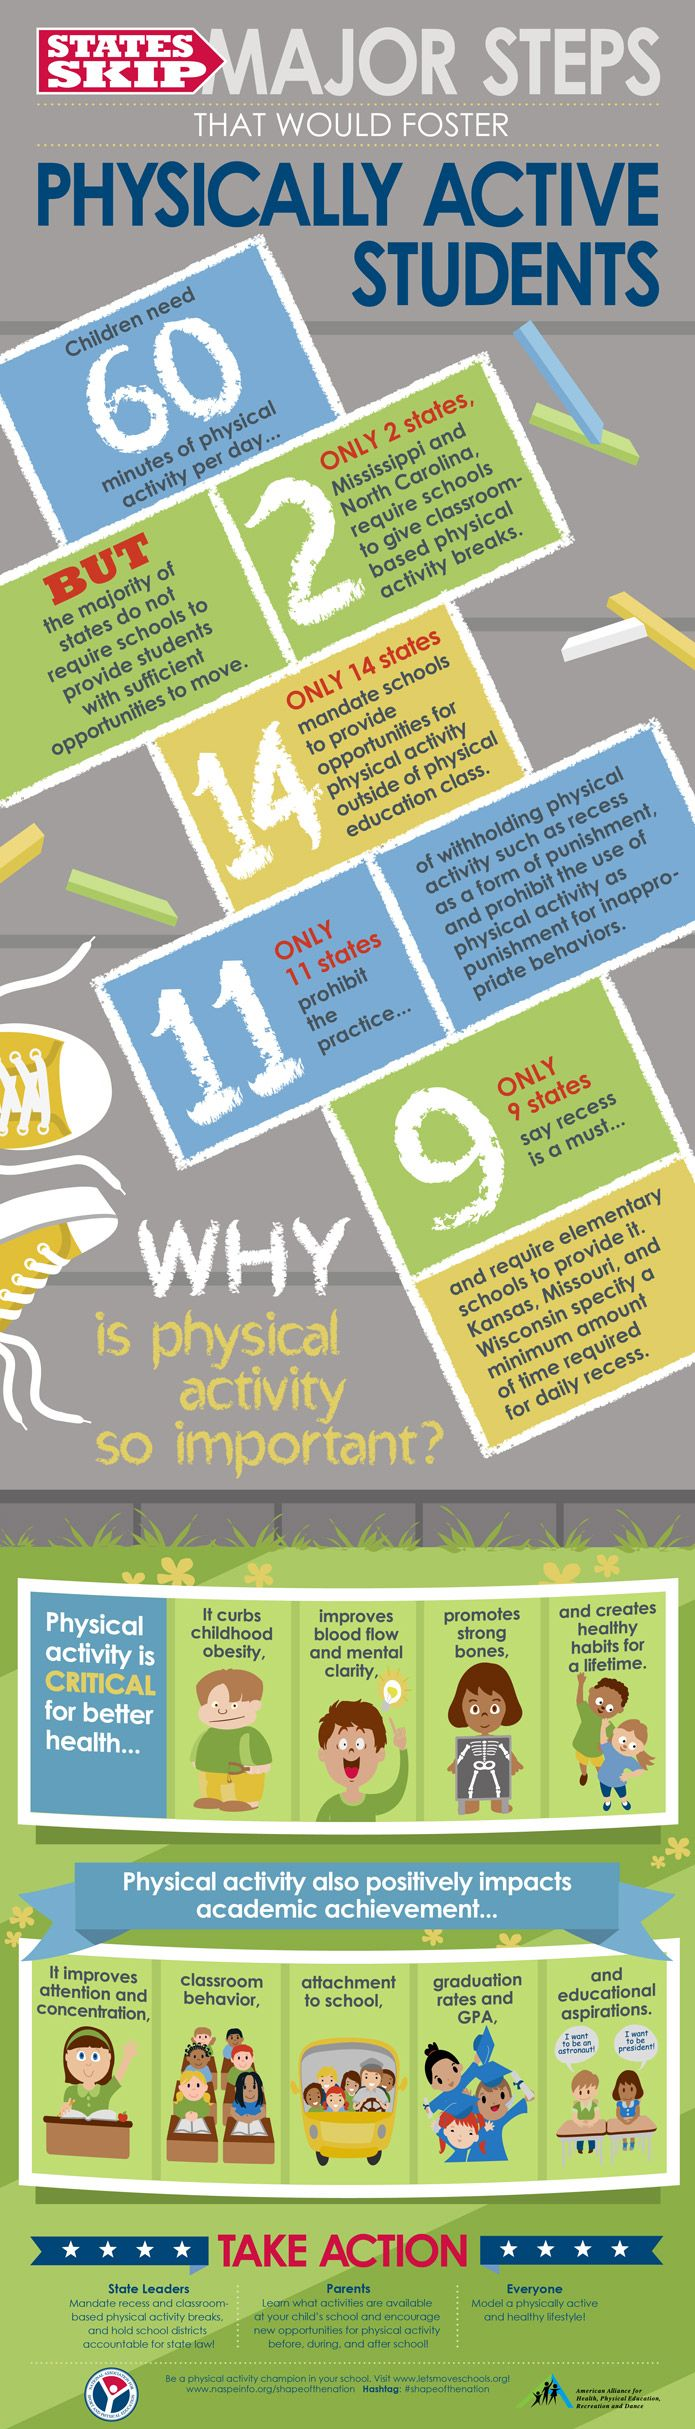 In this inaugural series based on the 2012 Shape of the Nation Report, part two depicts the missed opportunities for increasing physical activity in schools. Take a look at which states are taking important steps to create a culture of physical activity and which are not giving students ample opportunities to move!Shape-of-the-Nation-infographic